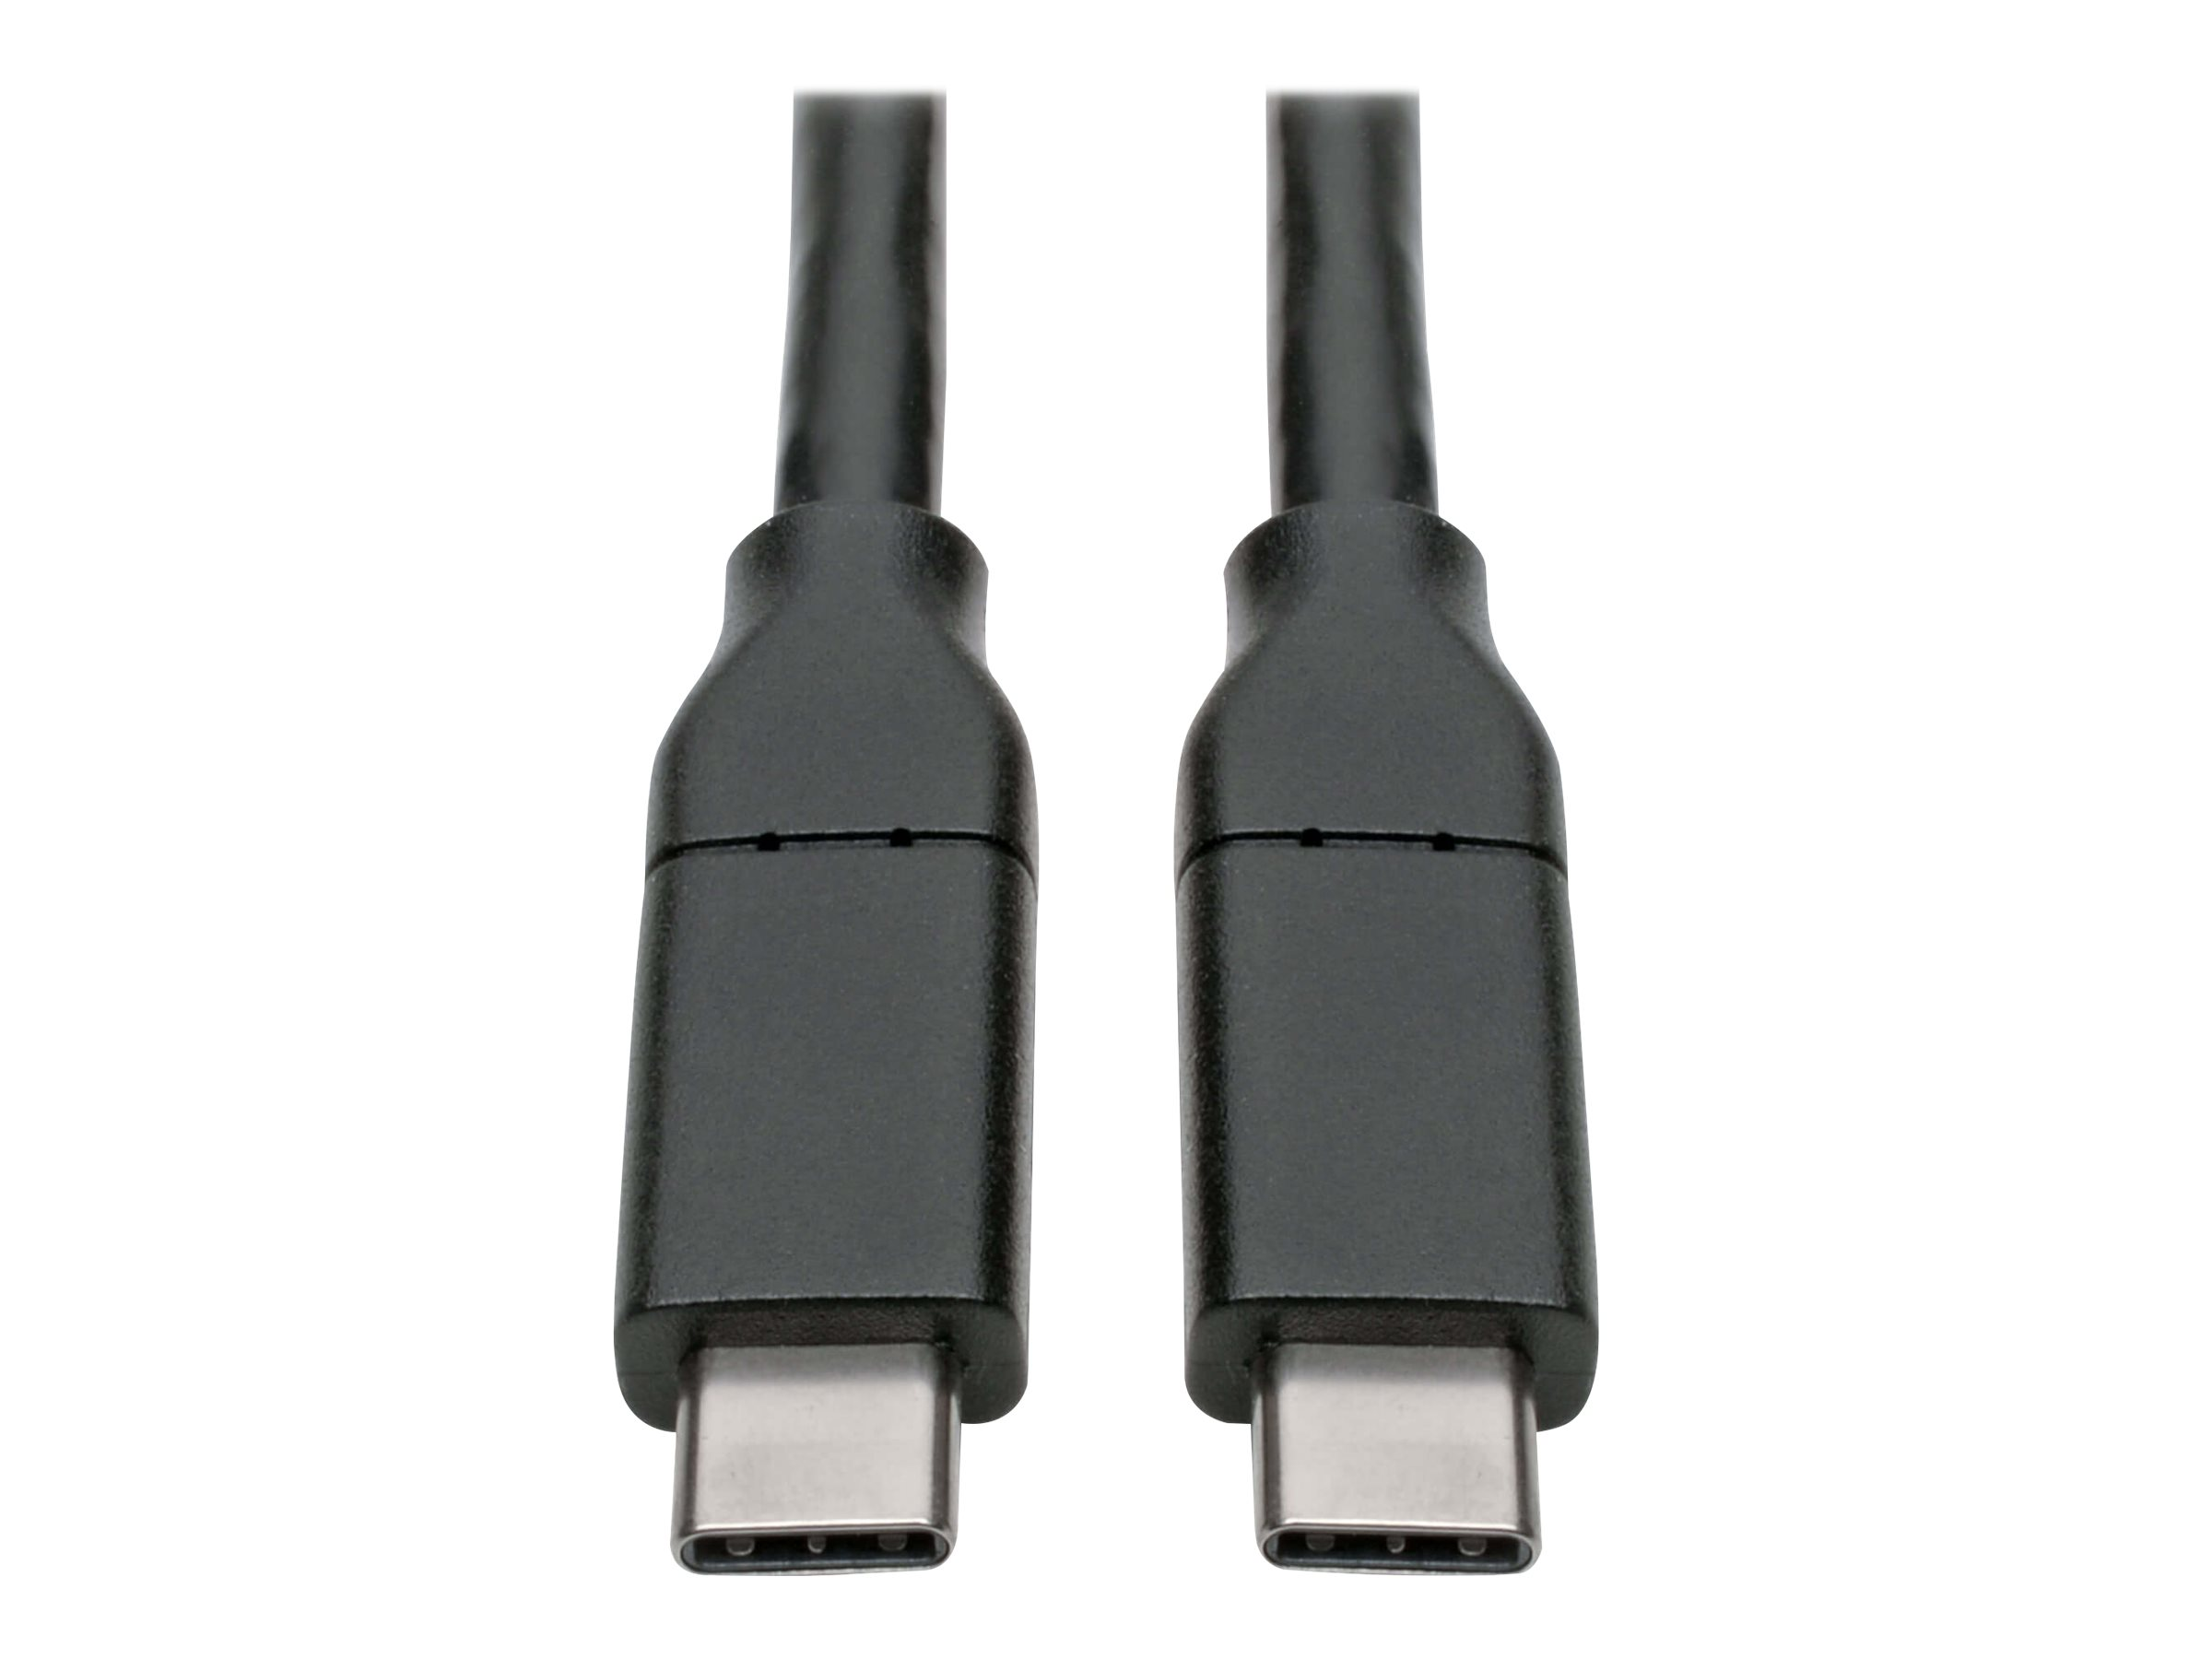 Tripp Lite USB Type C to USB C Cable USB 2.0 5A Rating USB-IF Cert M/M 13ft - USB-C cable - 4 m